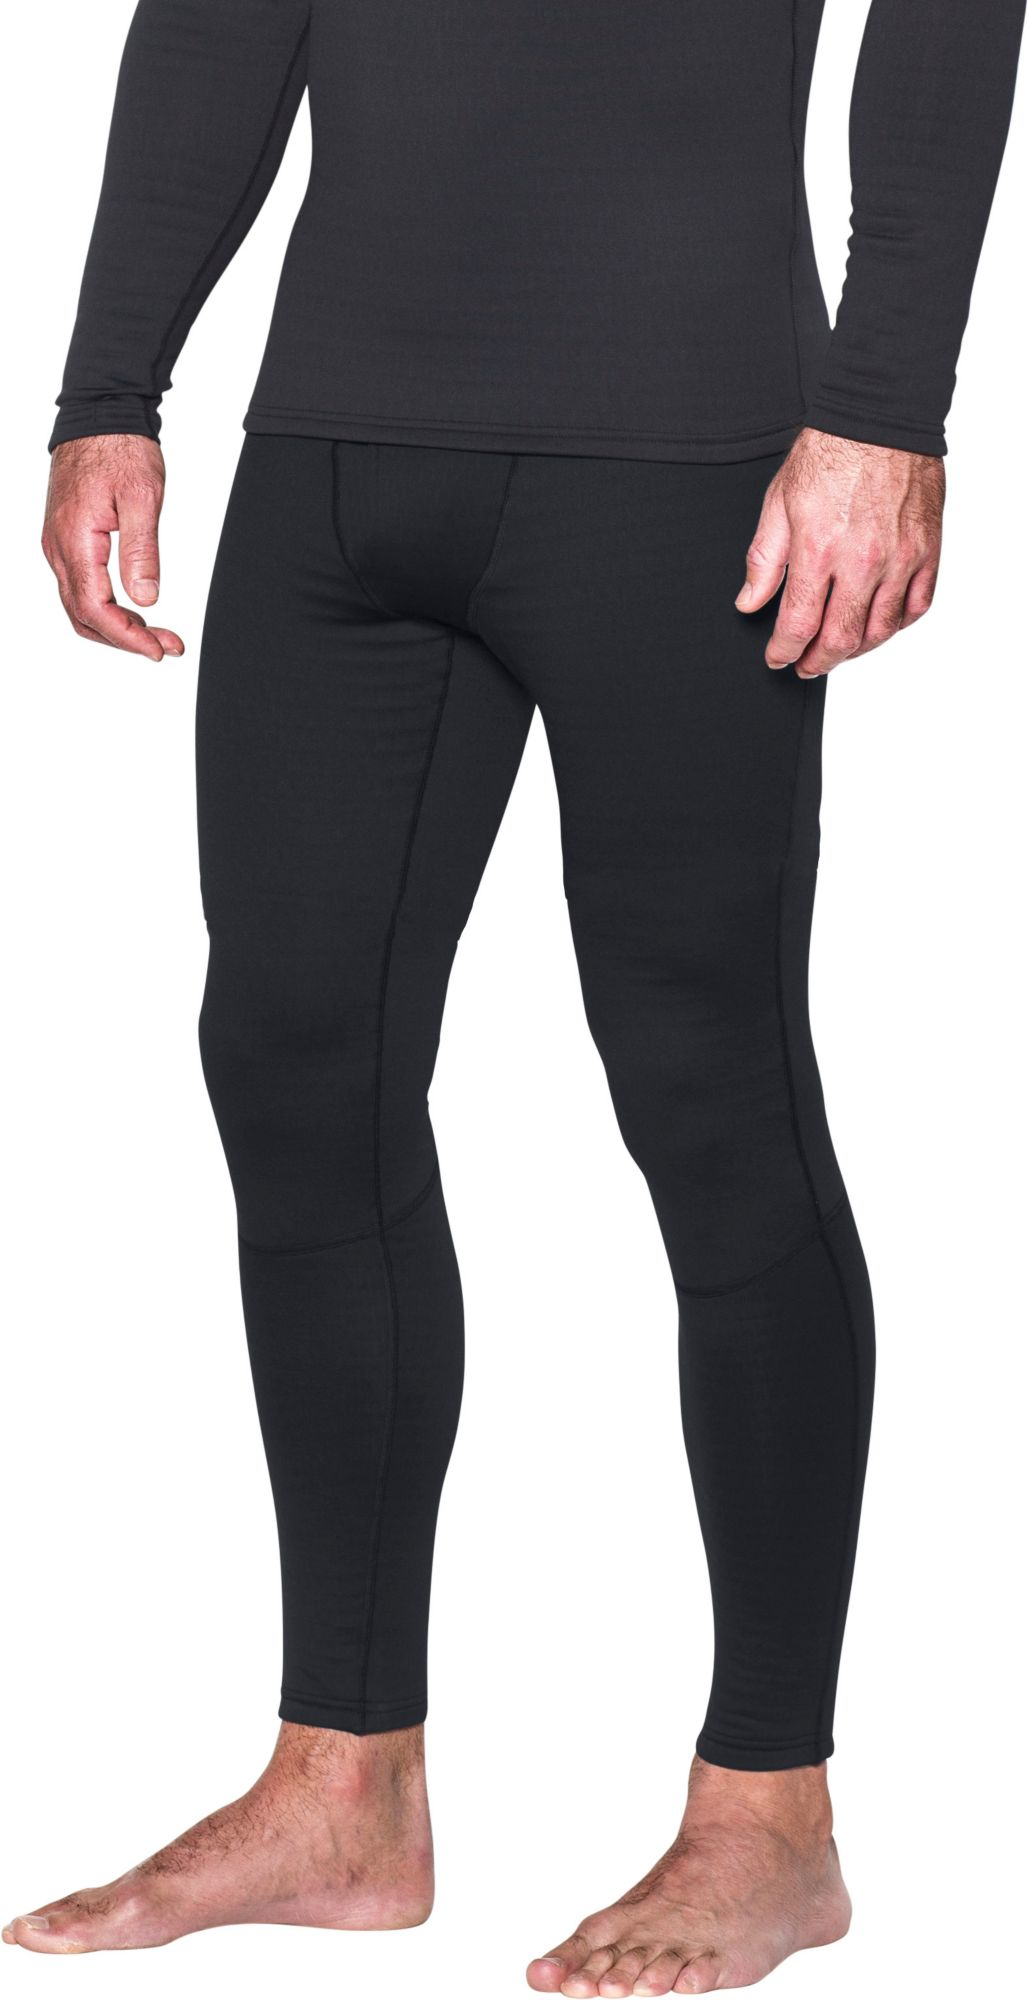 2c14600c39c3ee Under Armour Men's 4.0 Base Layer Leggings | DICK'S Sporting ...